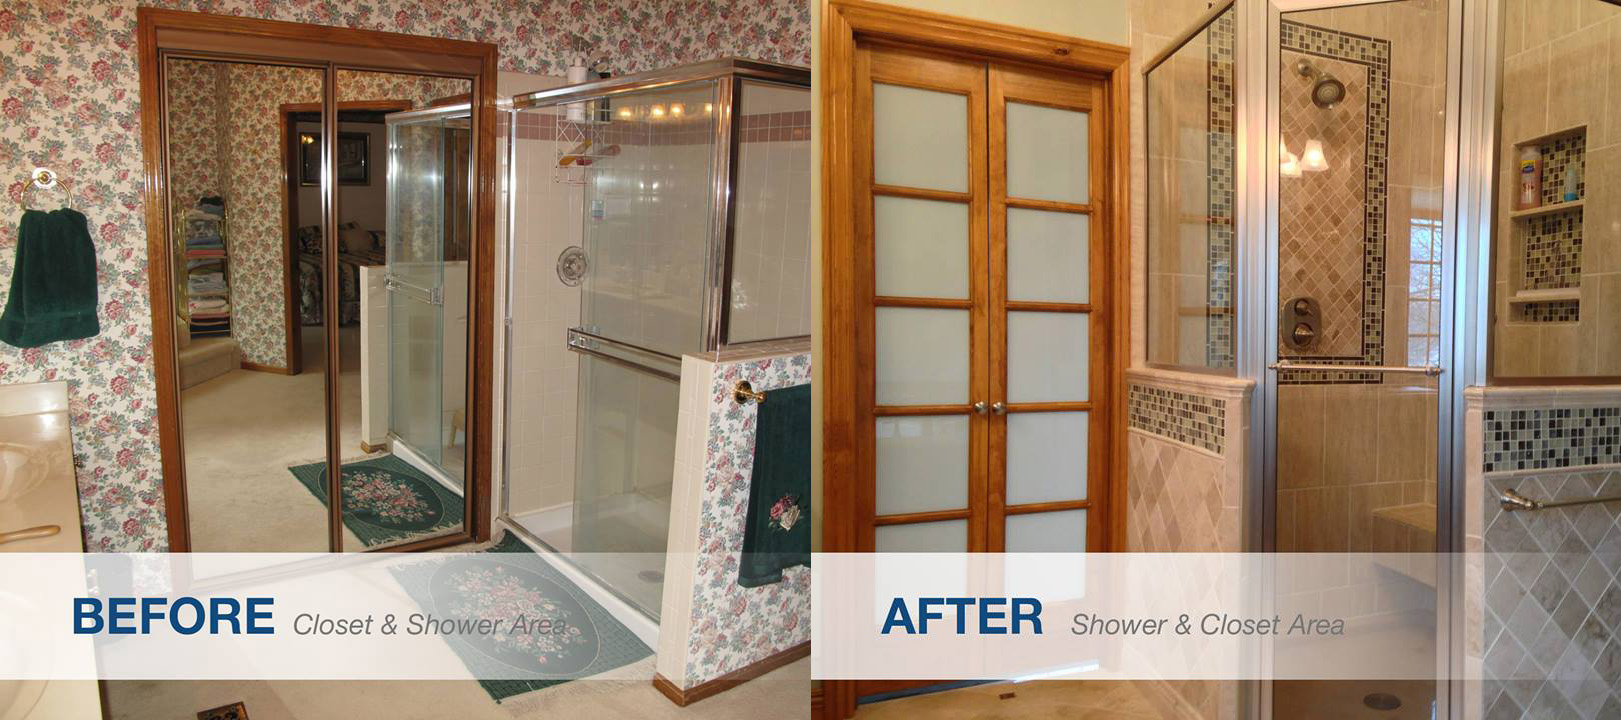 bathroom remodel pictures before and after design photos with